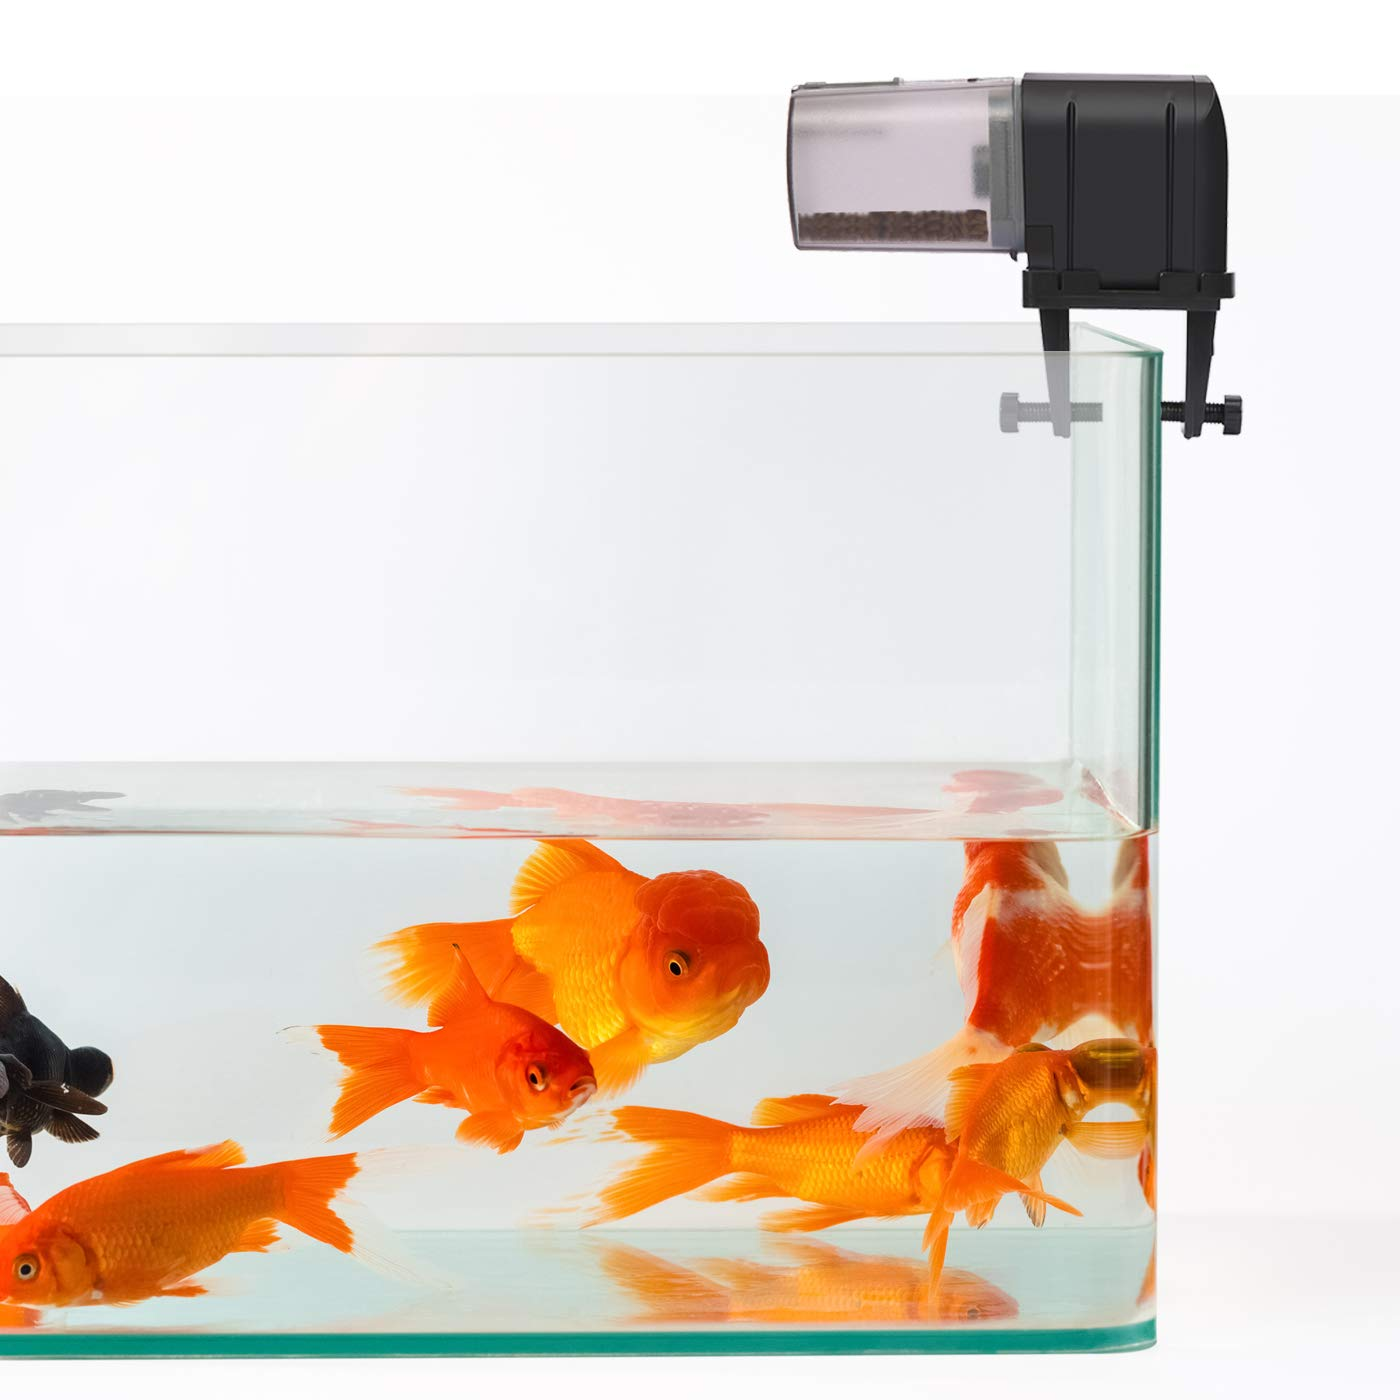 HDE Automatic Fish Feeder WiFi Enabled Programmable Aquarium Smart Device App Controlled Fish Food Dispenser (Black) by HDE (Image #2)